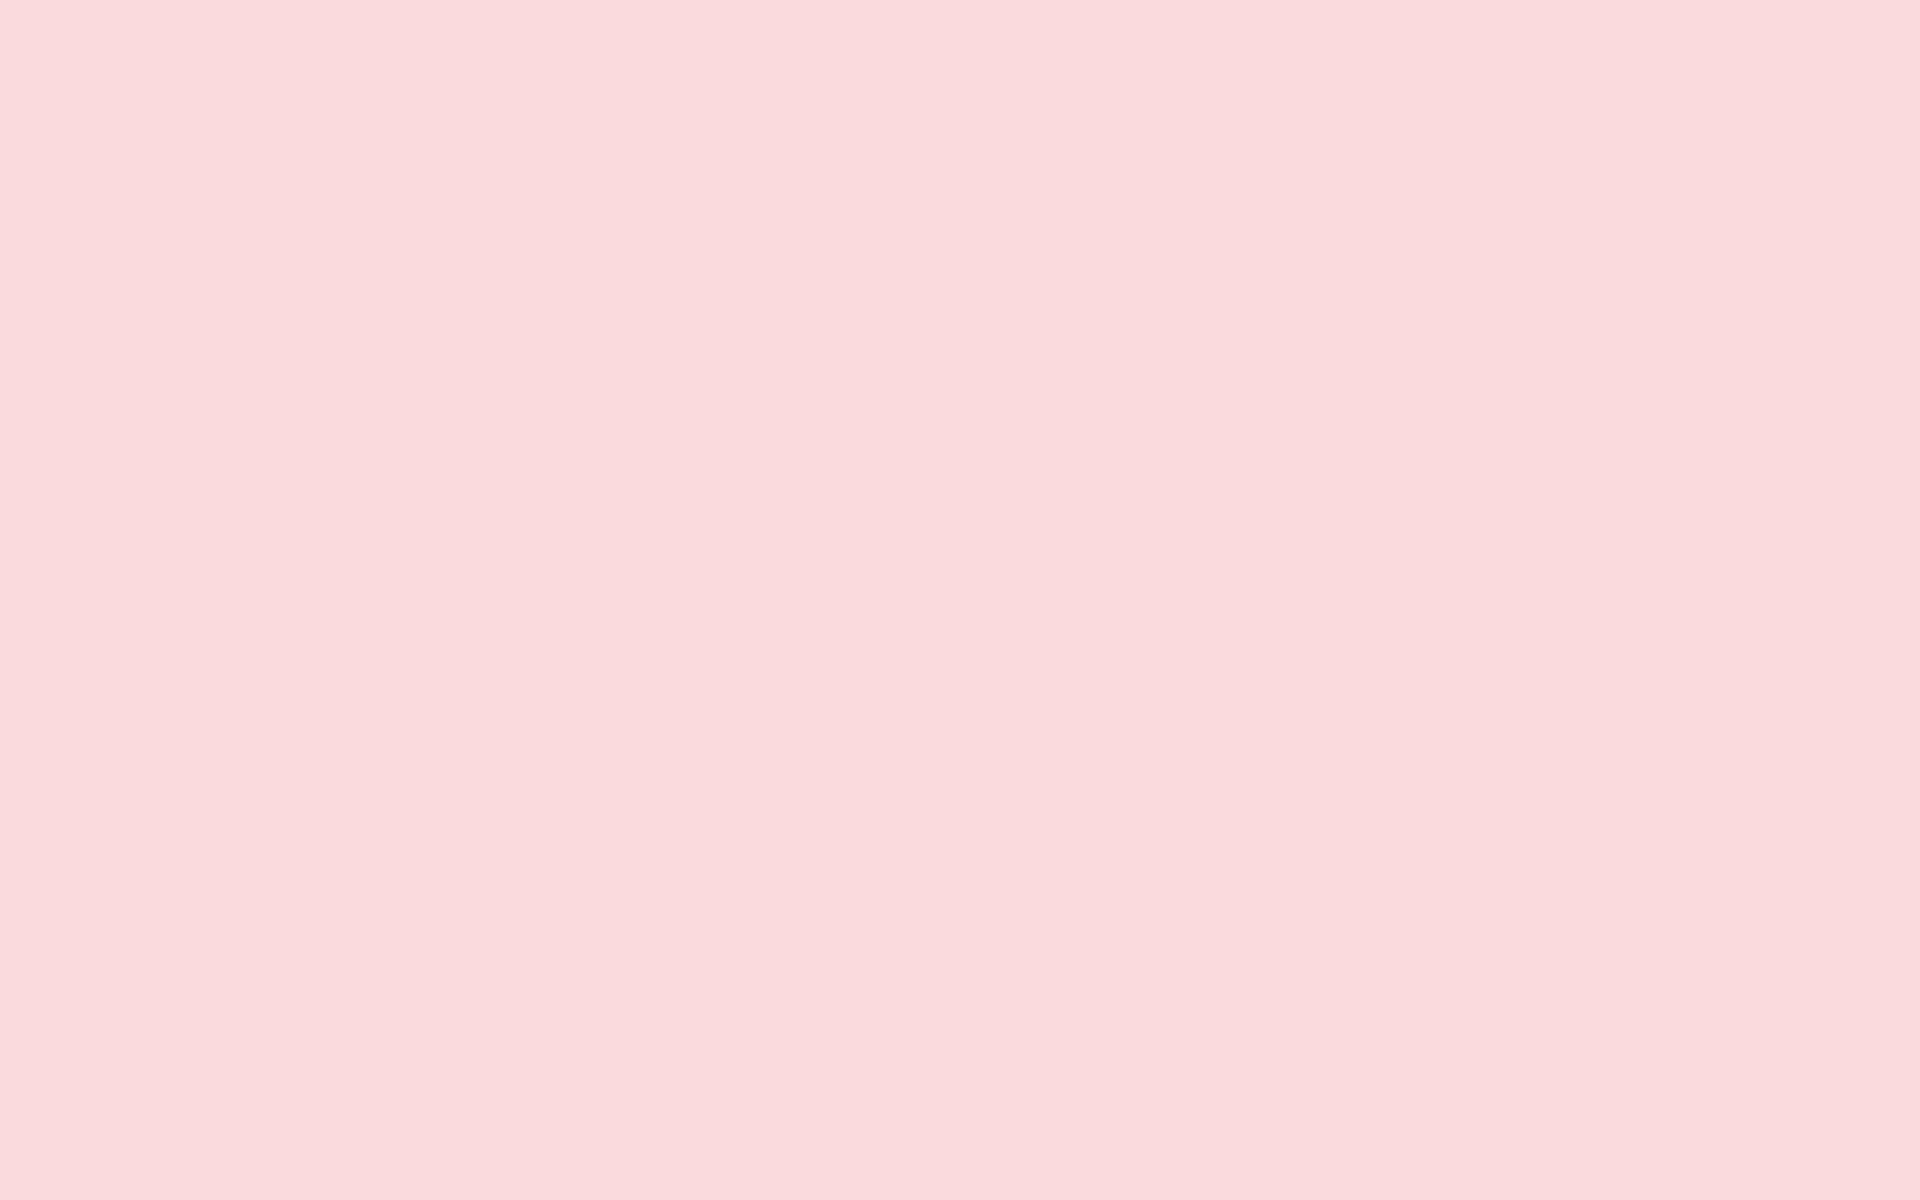 1920x1200 Pale Pink Solid Color Background